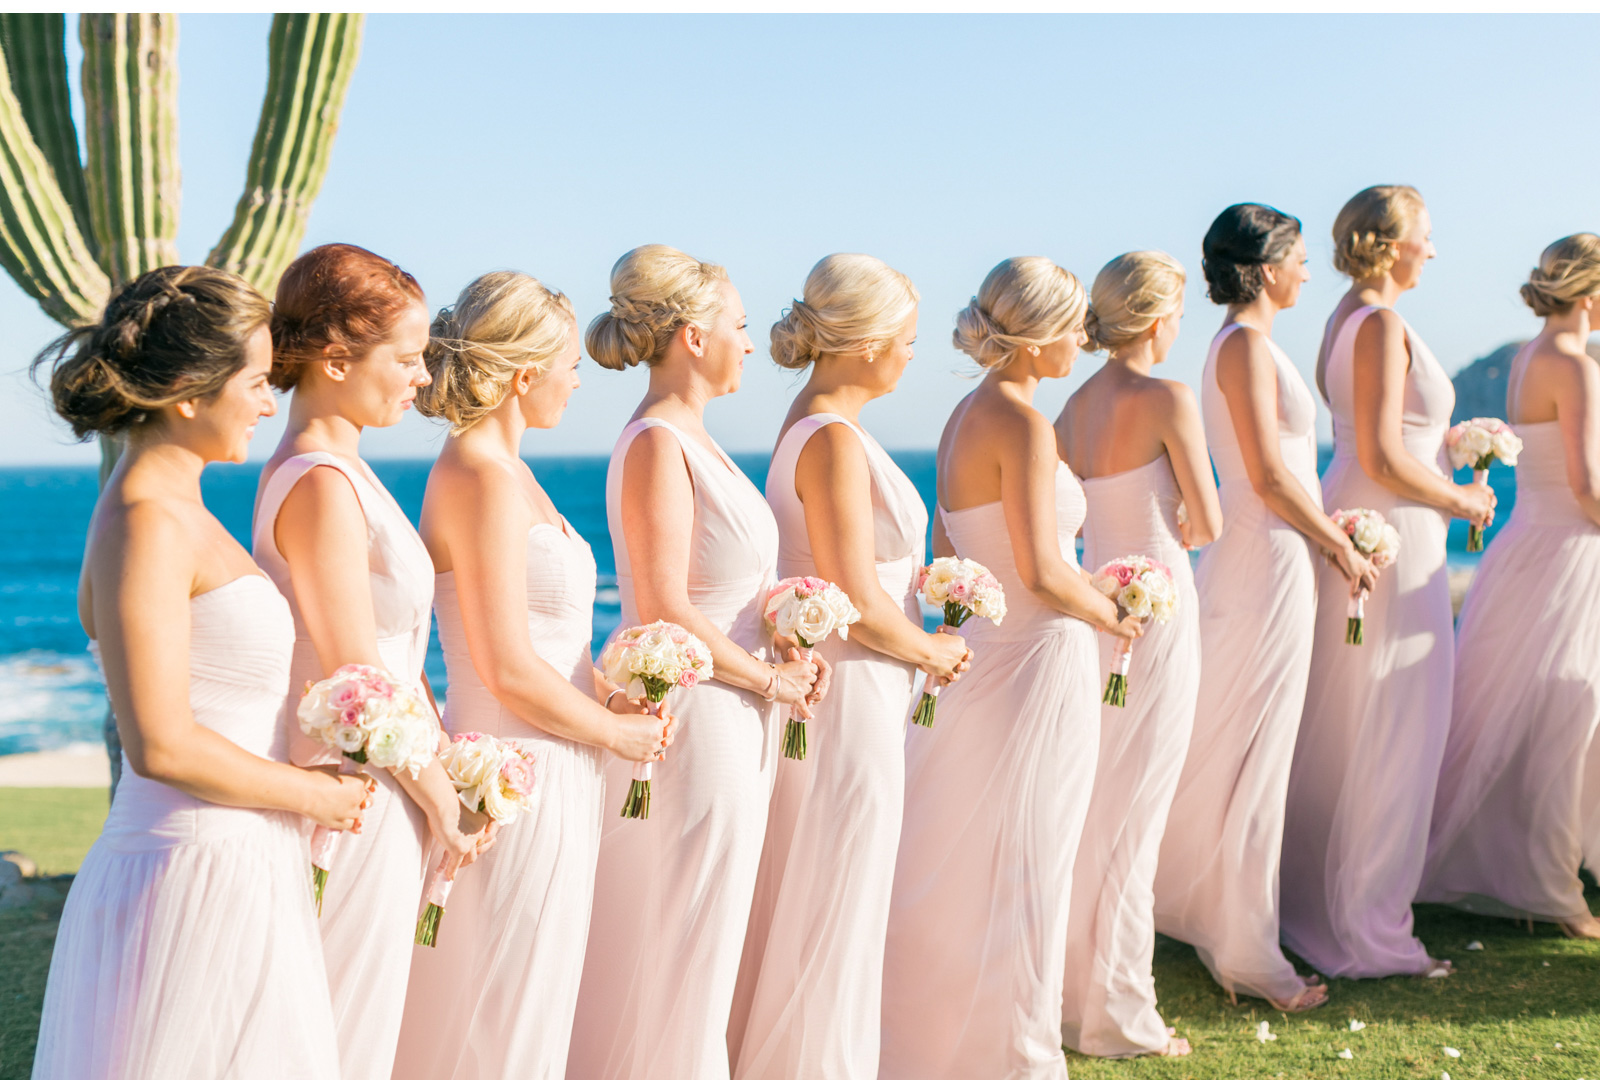 Style-Me-Pretty-Cabo-Wedding-Natalie-Schutt-Photography_08.jpg